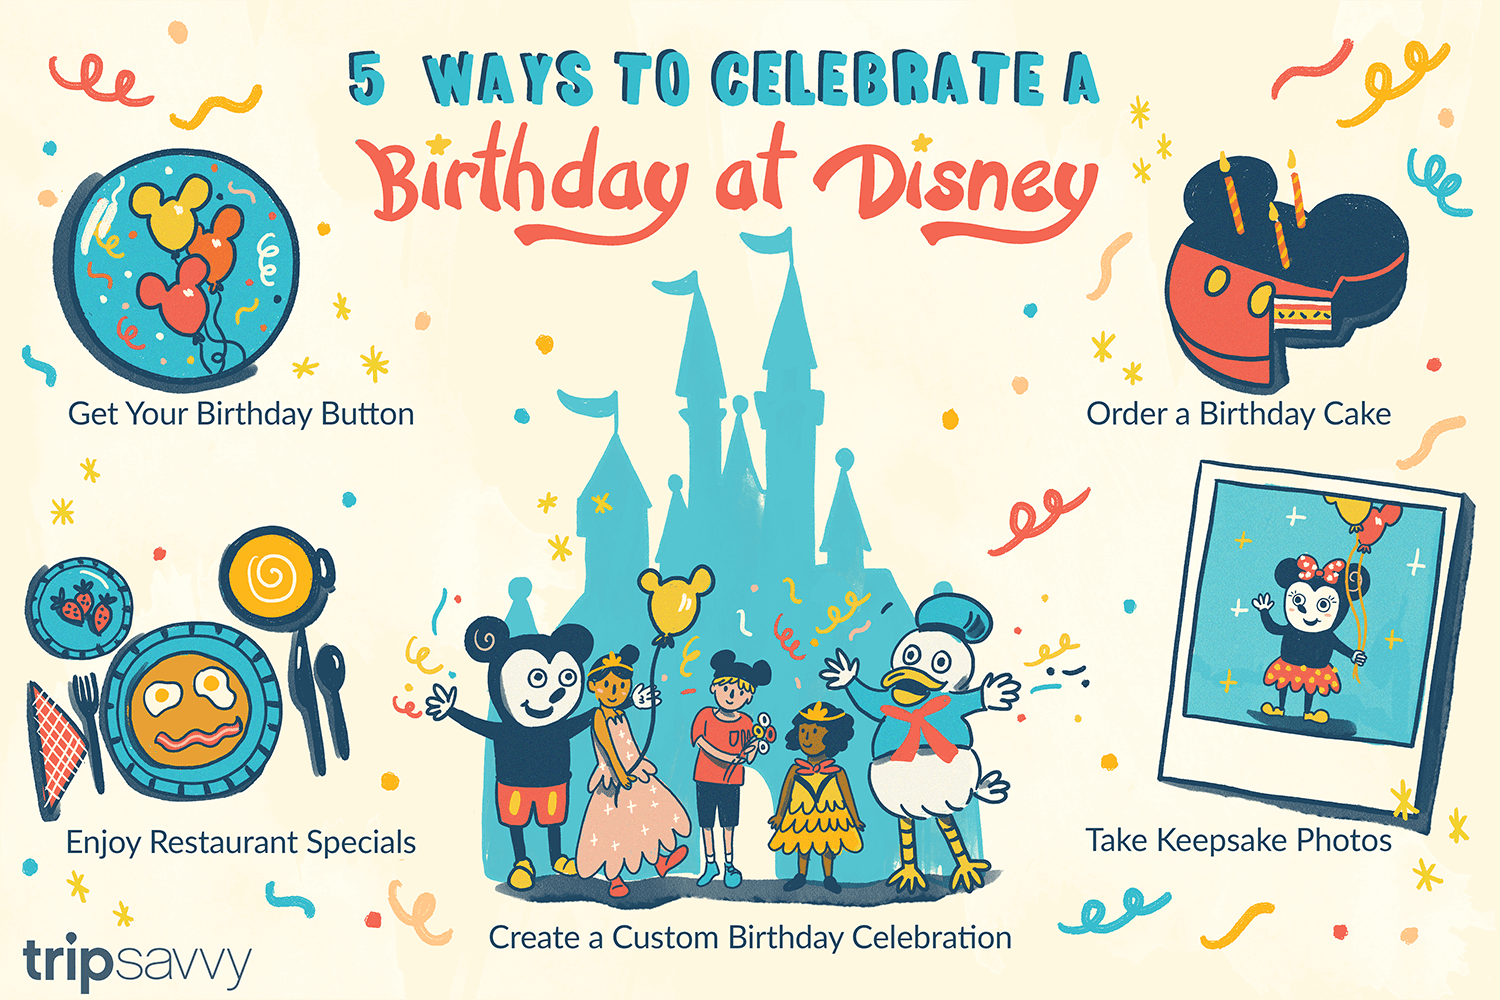 Celebrate A Birthday At Disney World Or Disneyland Png 1500x1000 Happy Wish